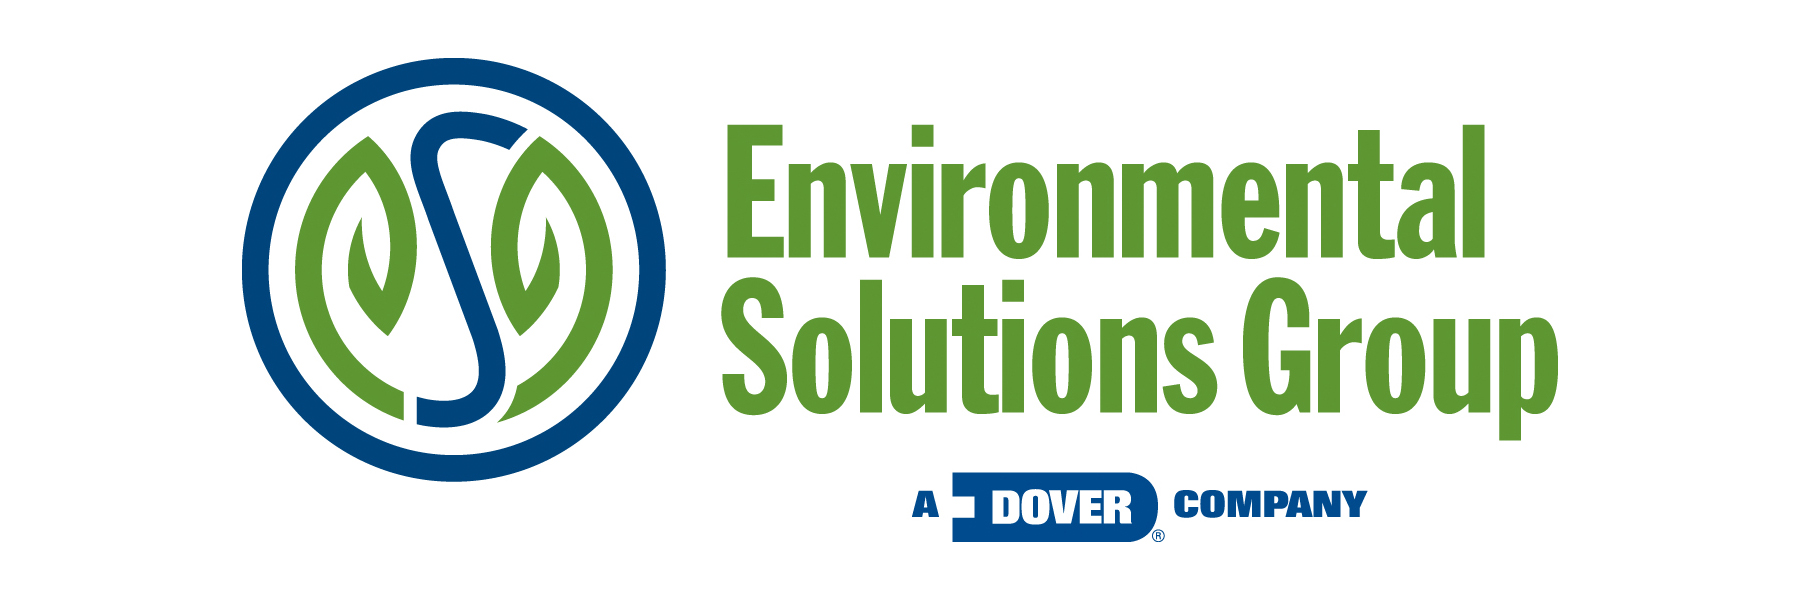 Environmental Solutions Group Help Center home page